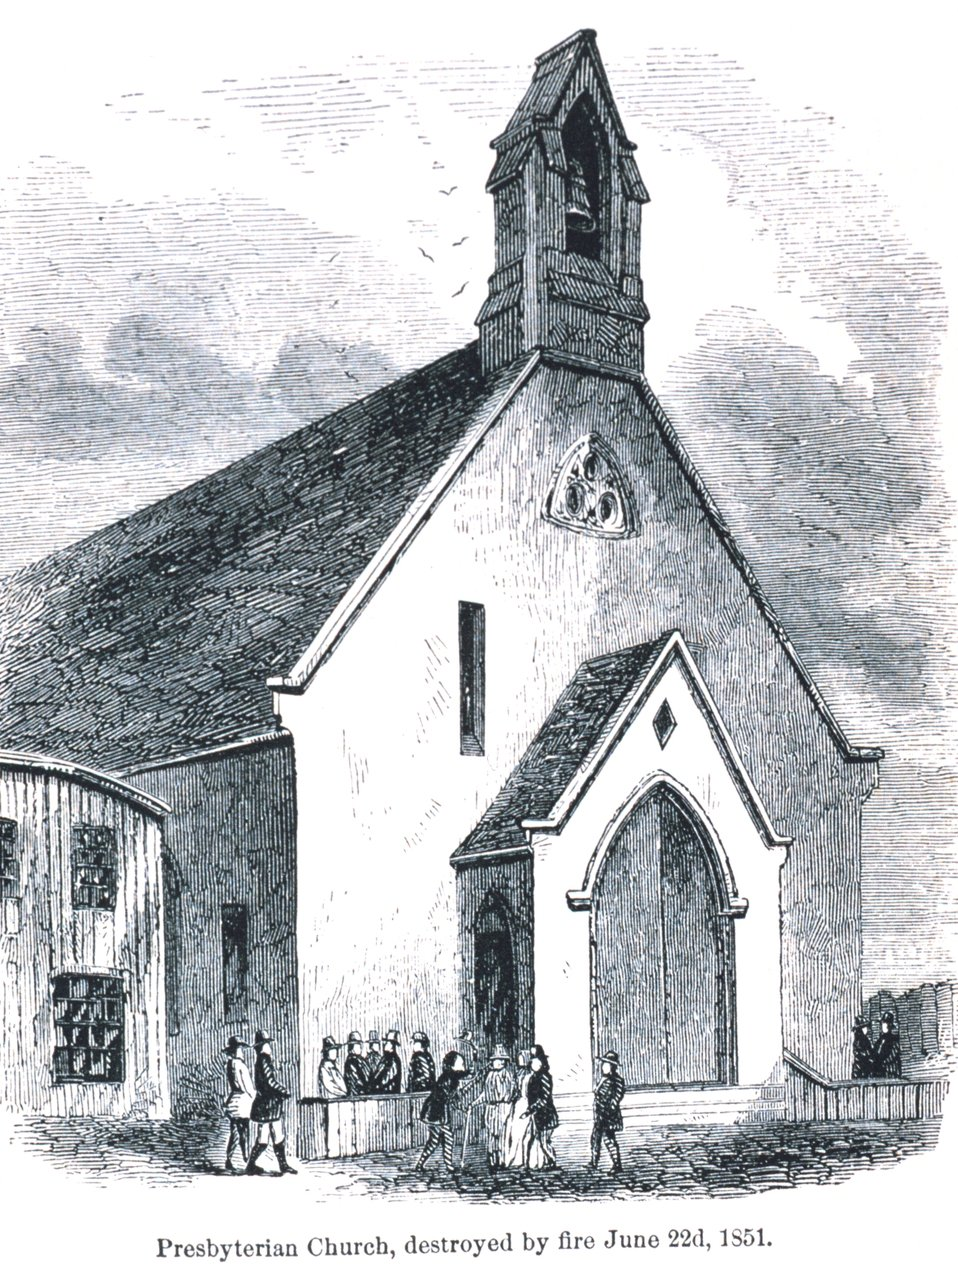 Presbyterian Church destroyed by fire on June 22nd, 1851. In: 'The Annals of San Francisco'.  Frank Soule, John Gihon, and James Nesbit.  1855.  Page 691.  D. Appleton & Company, New York.  F869.S3.S7 1855.